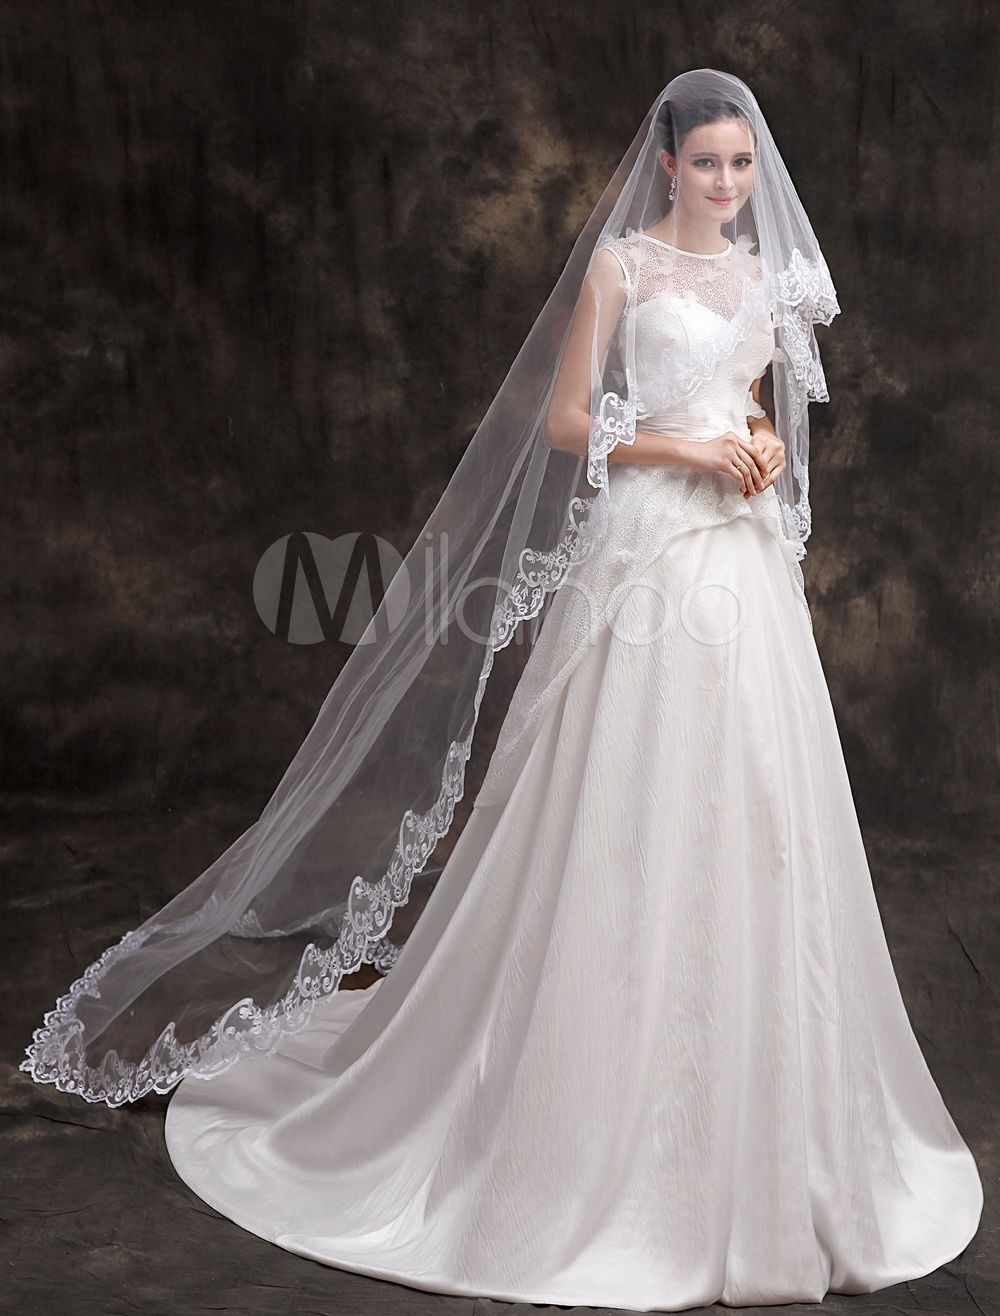 1940s style wedding dresses  White Polyester OneTier Waterfall Lace Applique Edge Lace Wedding